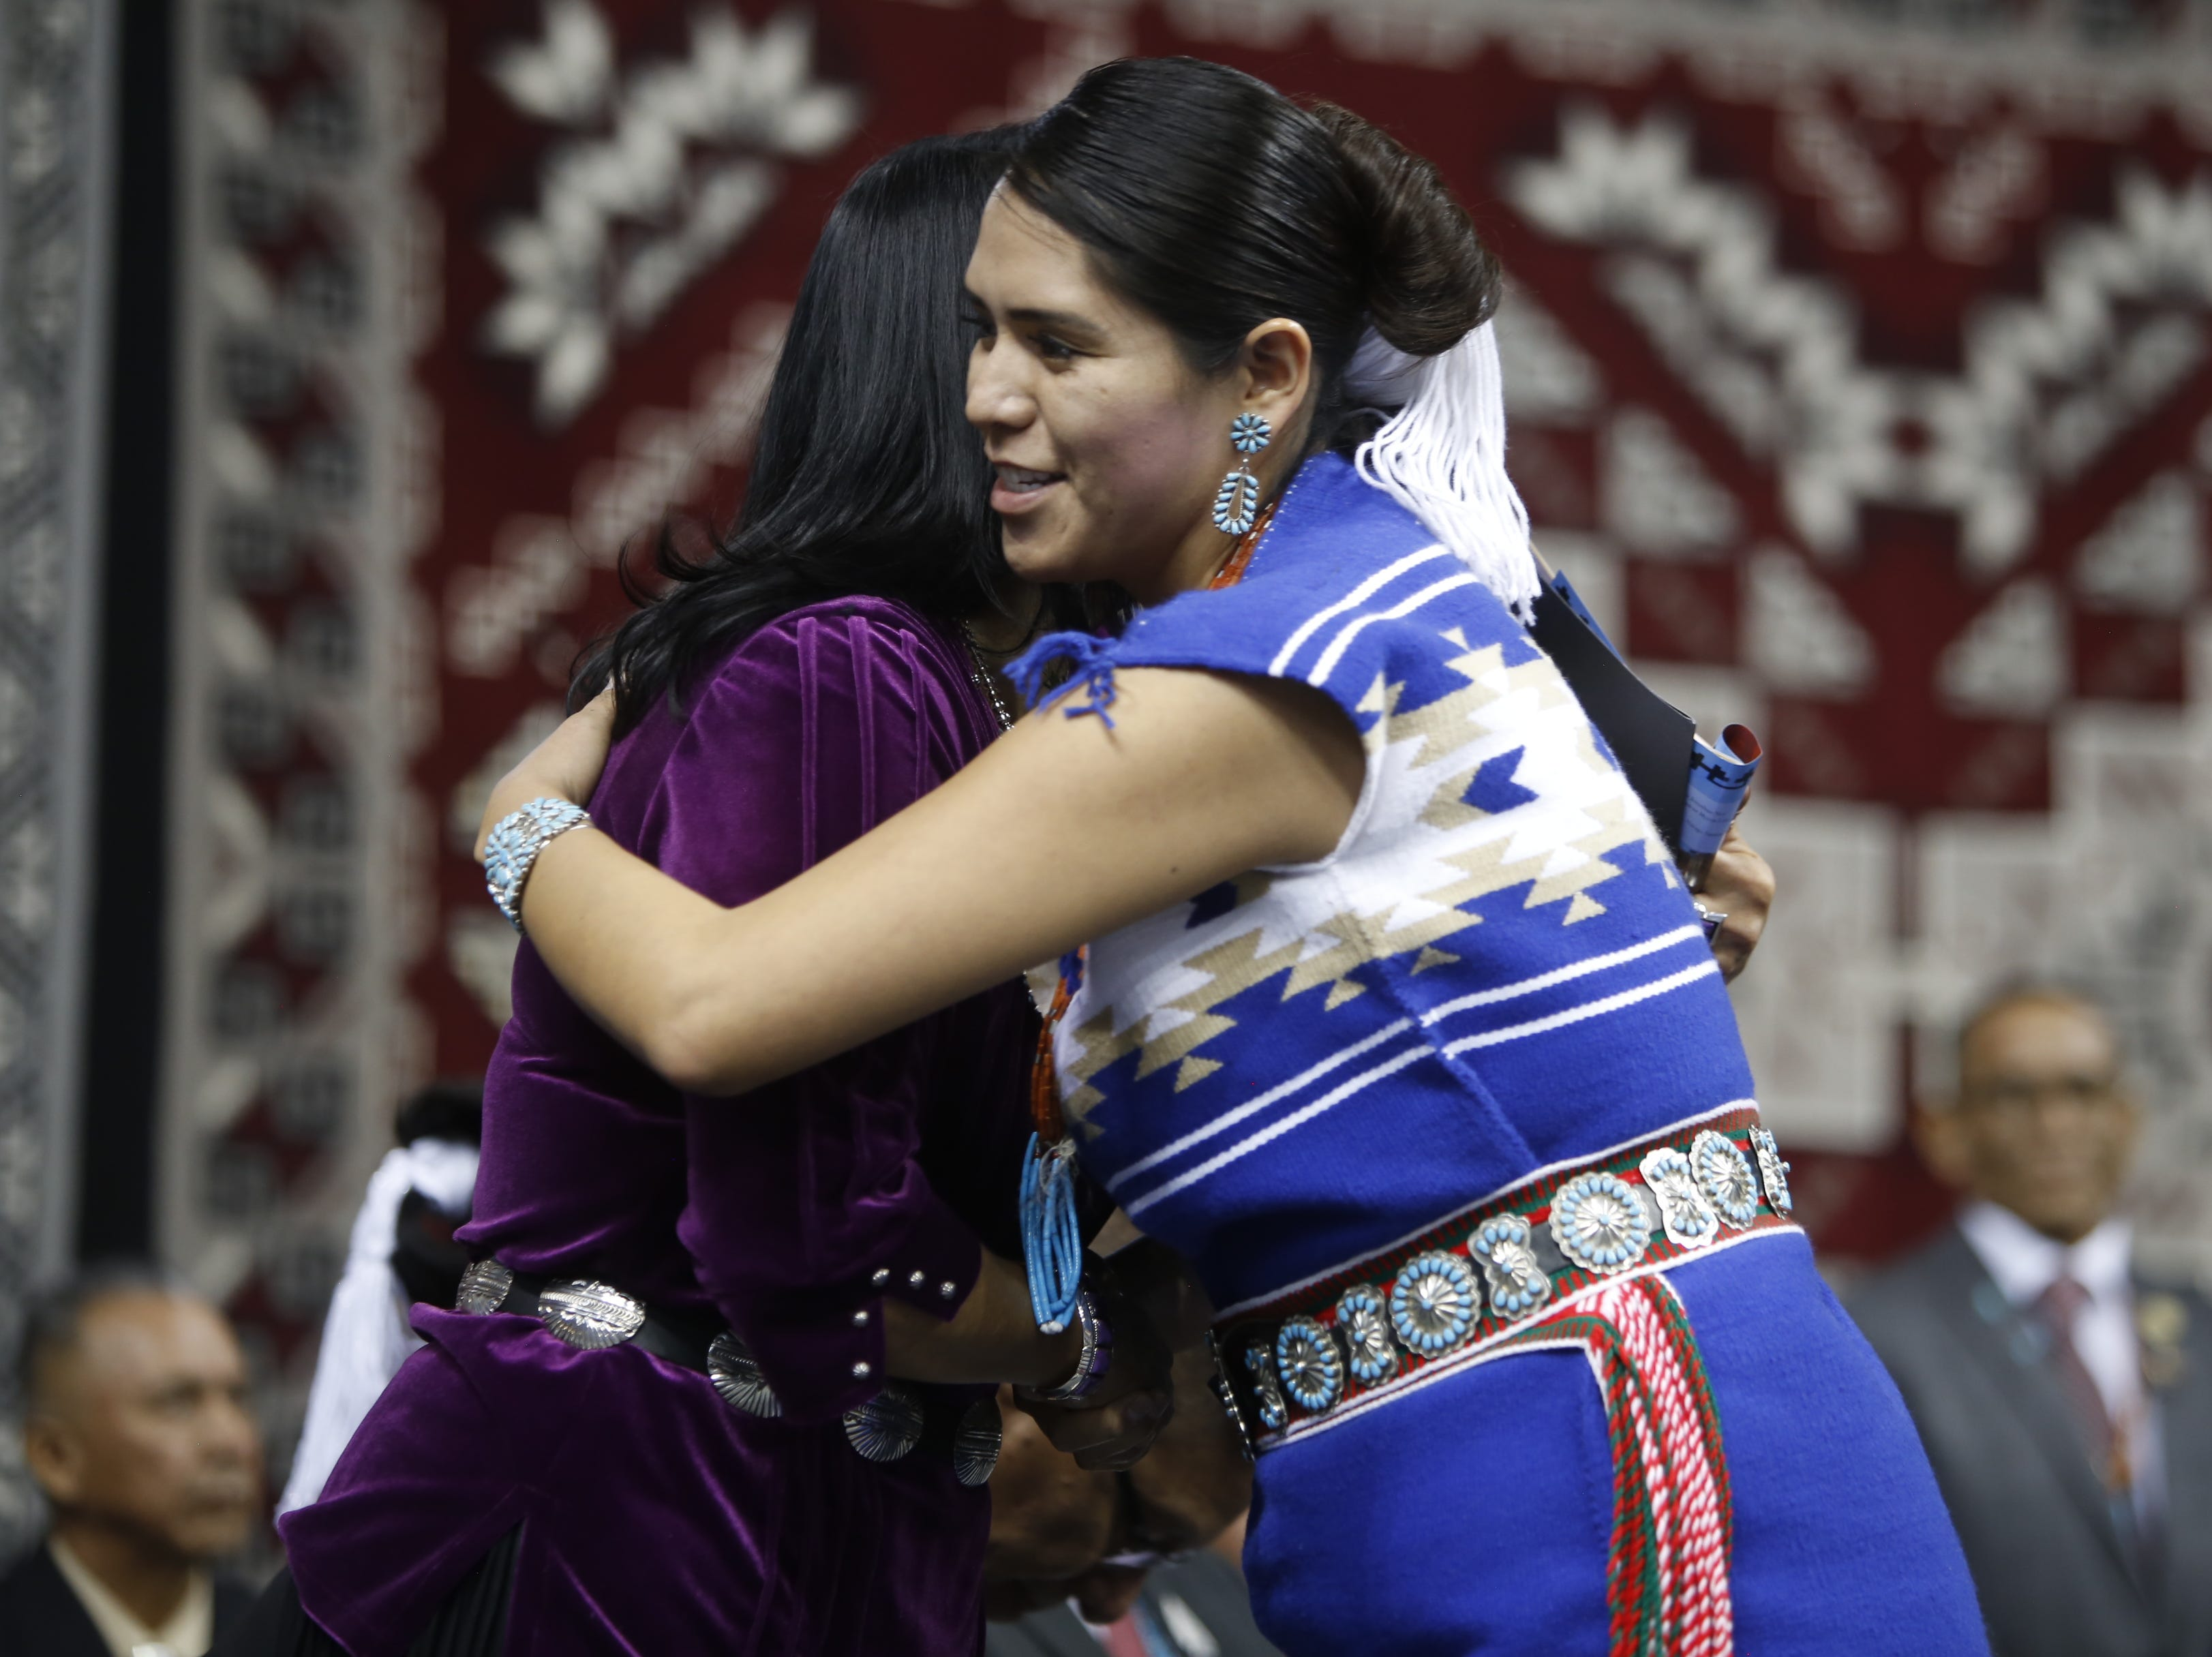 Charlaine Tso, right, hugs Dottie Lizer after taking the oath of office for the Navajo Nation Council. Tso will represent five chapters in the Northern Agency.